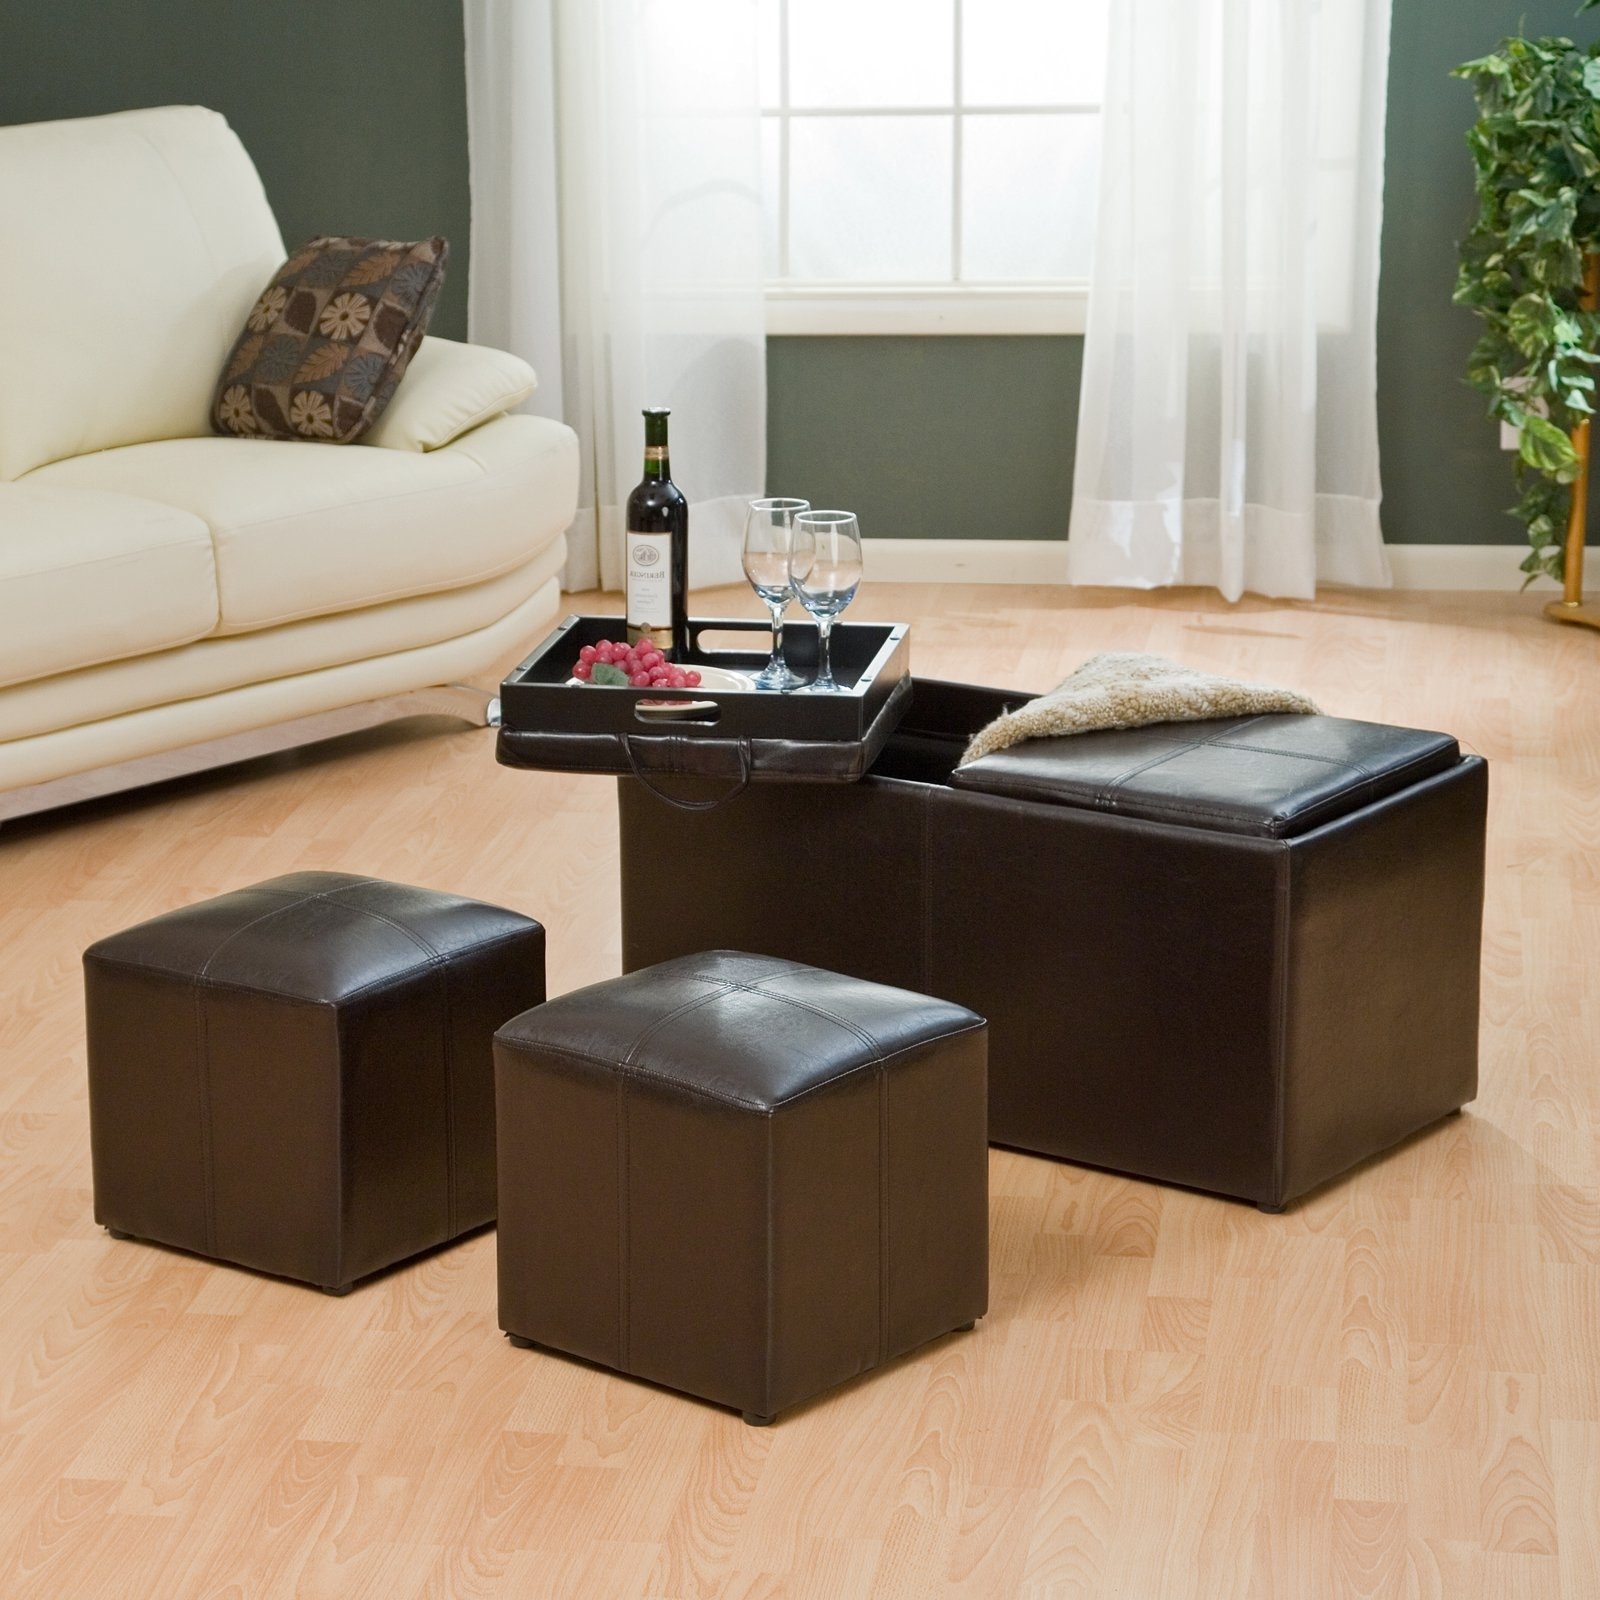 Leather Ottoman With Double Tray Table With Storage And 2 Chairs Inside Most Current Ottomans With Tray (View 6 of 20)